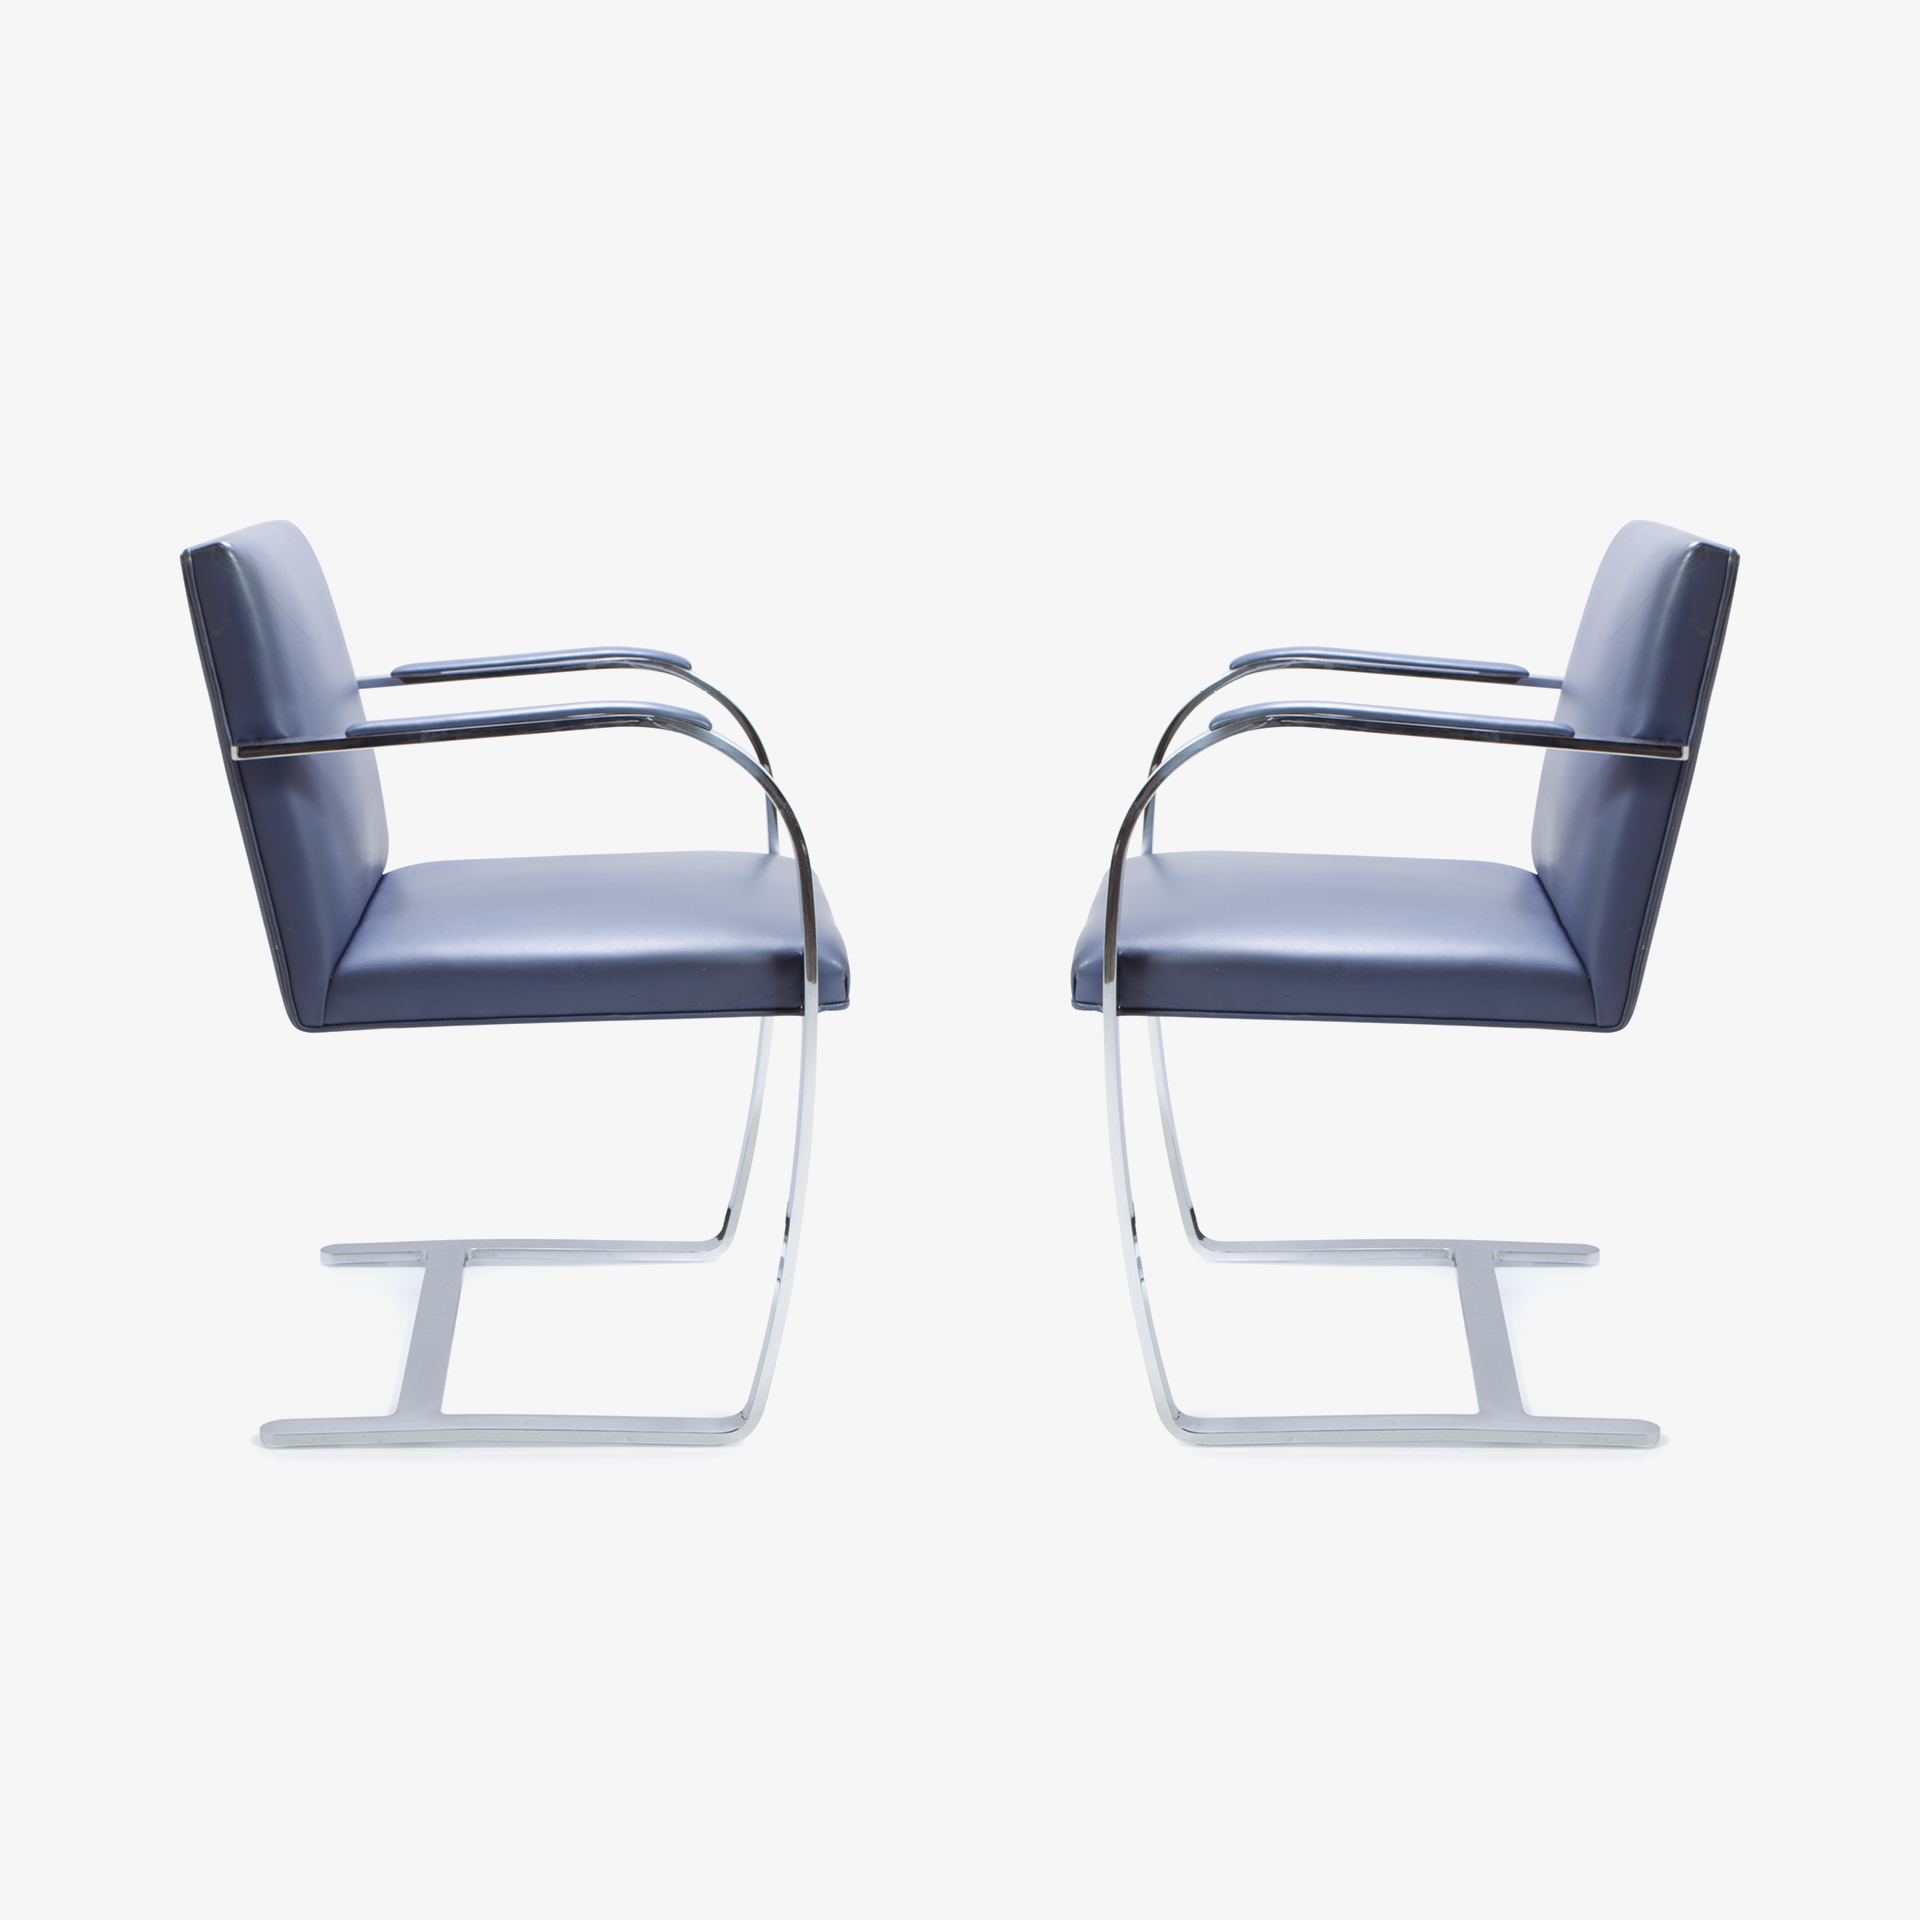 Brno Chairs in Navy Leather3.jpg